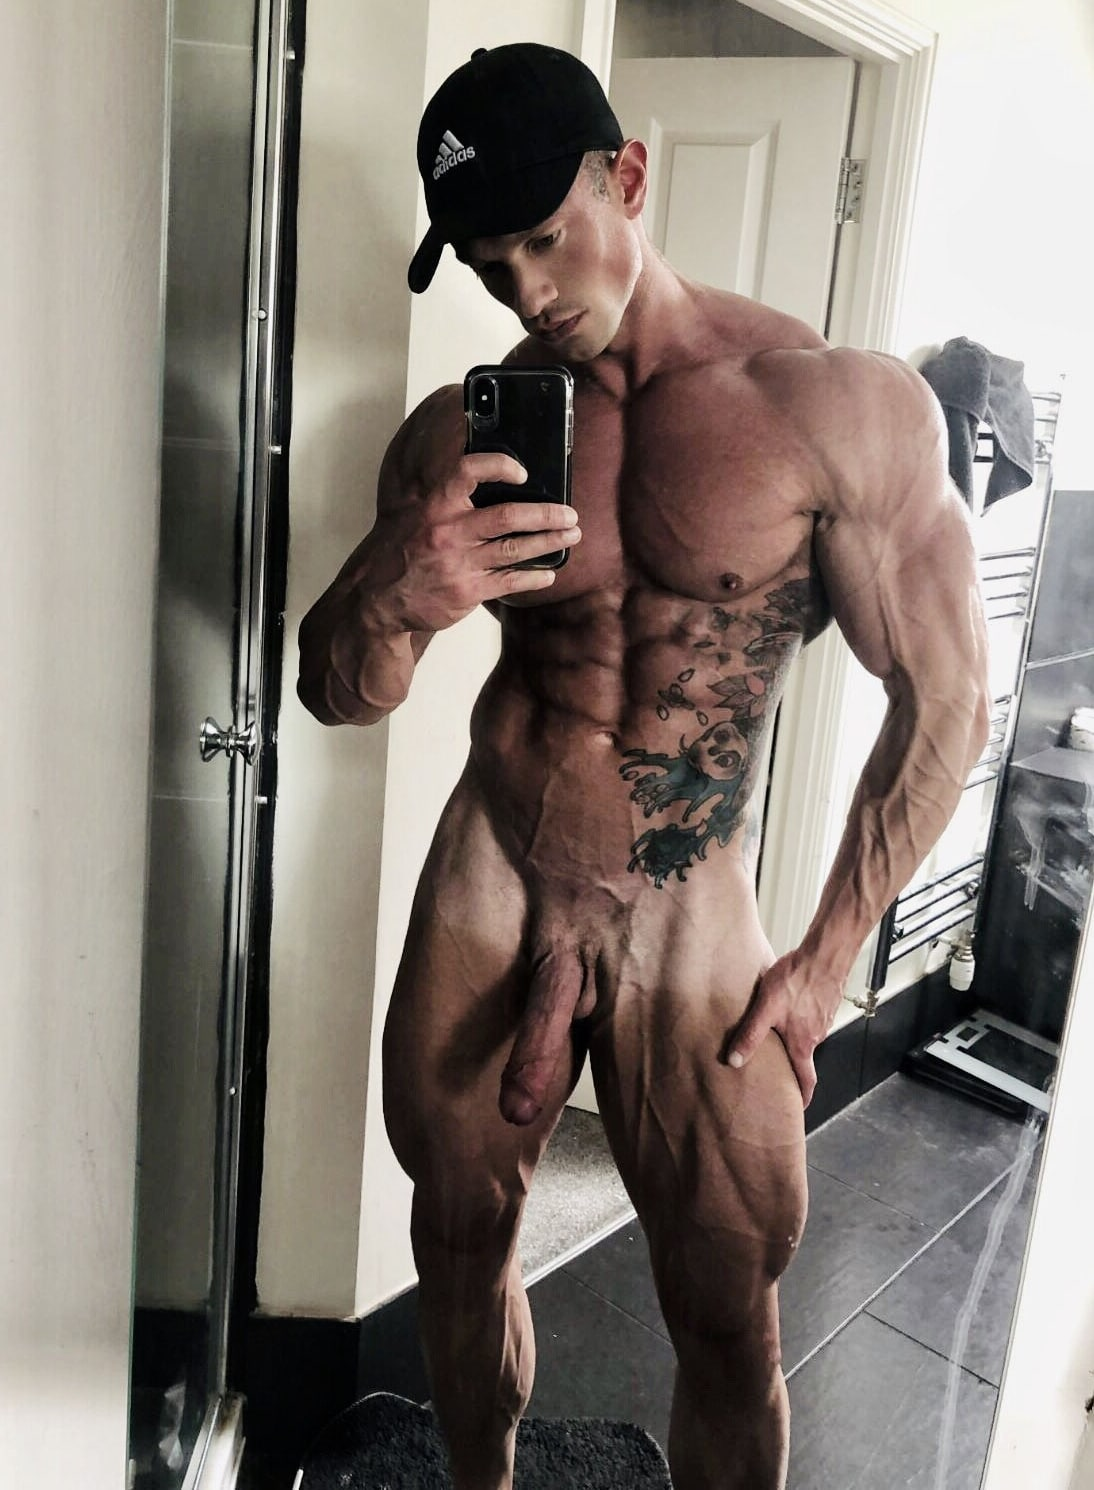 Hot hunk taking a selfie